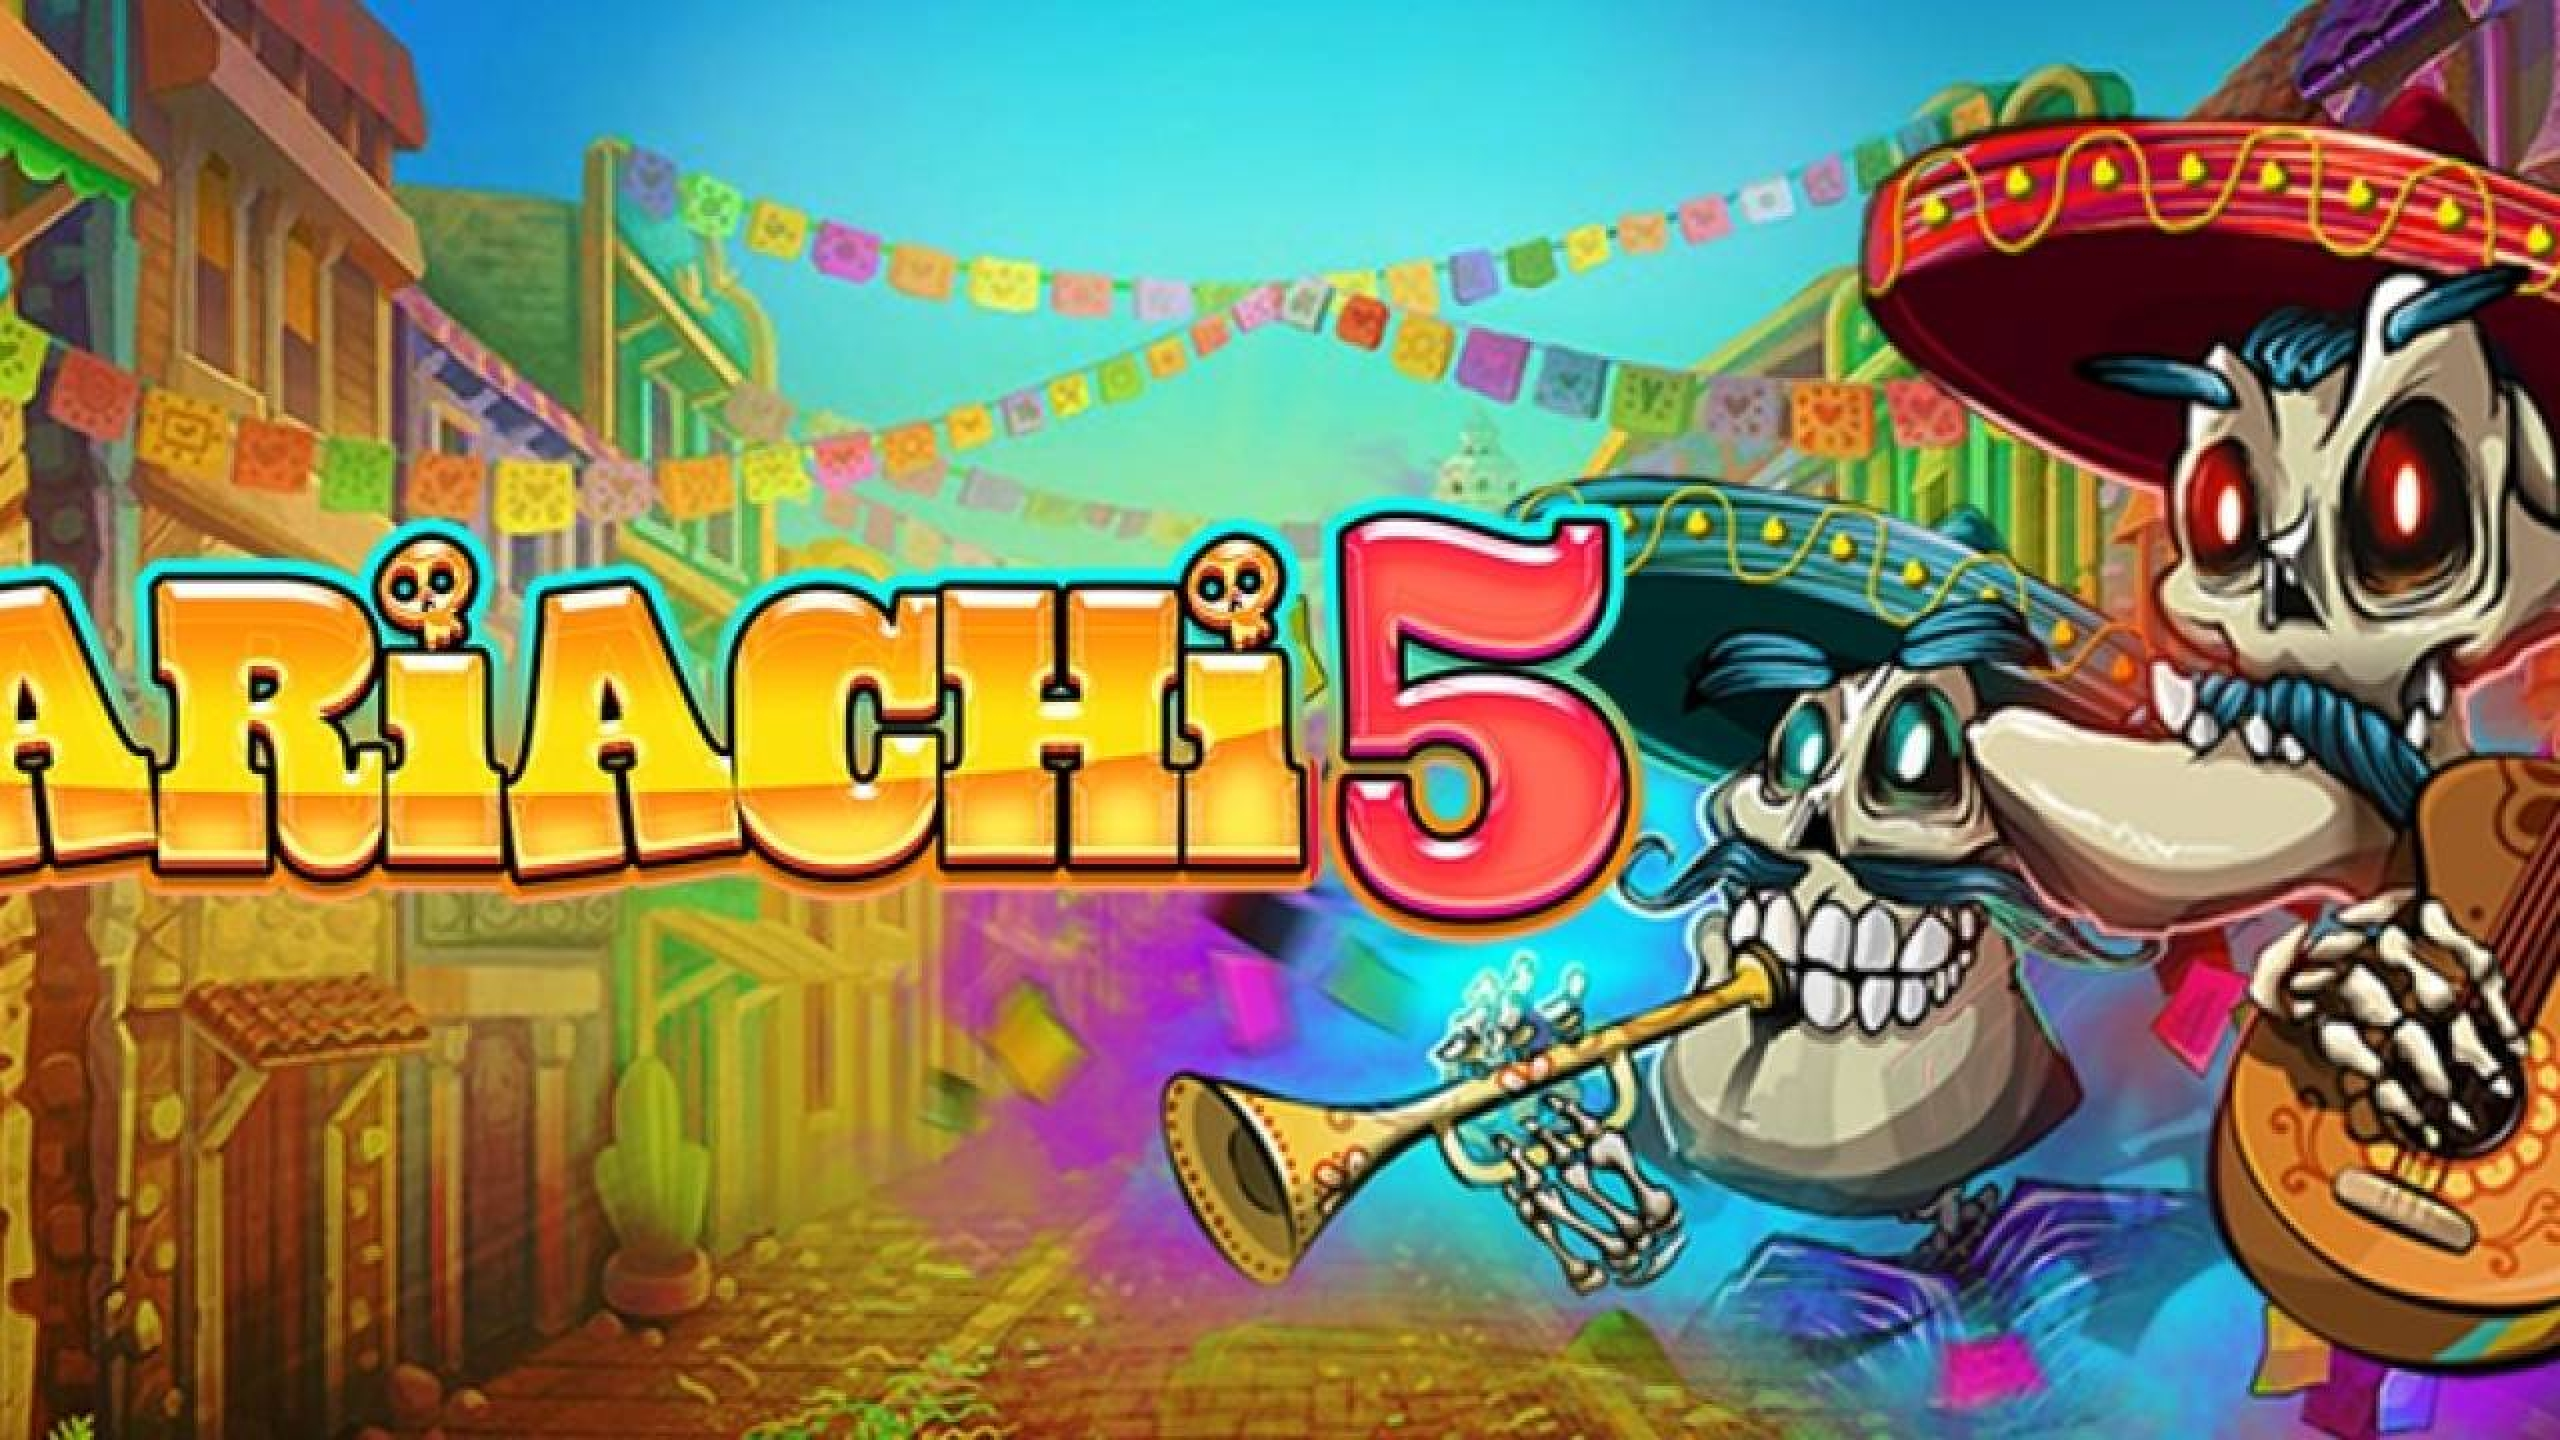 The The Mariachi 5 Online Slot Demo Game by Real Time Gaming